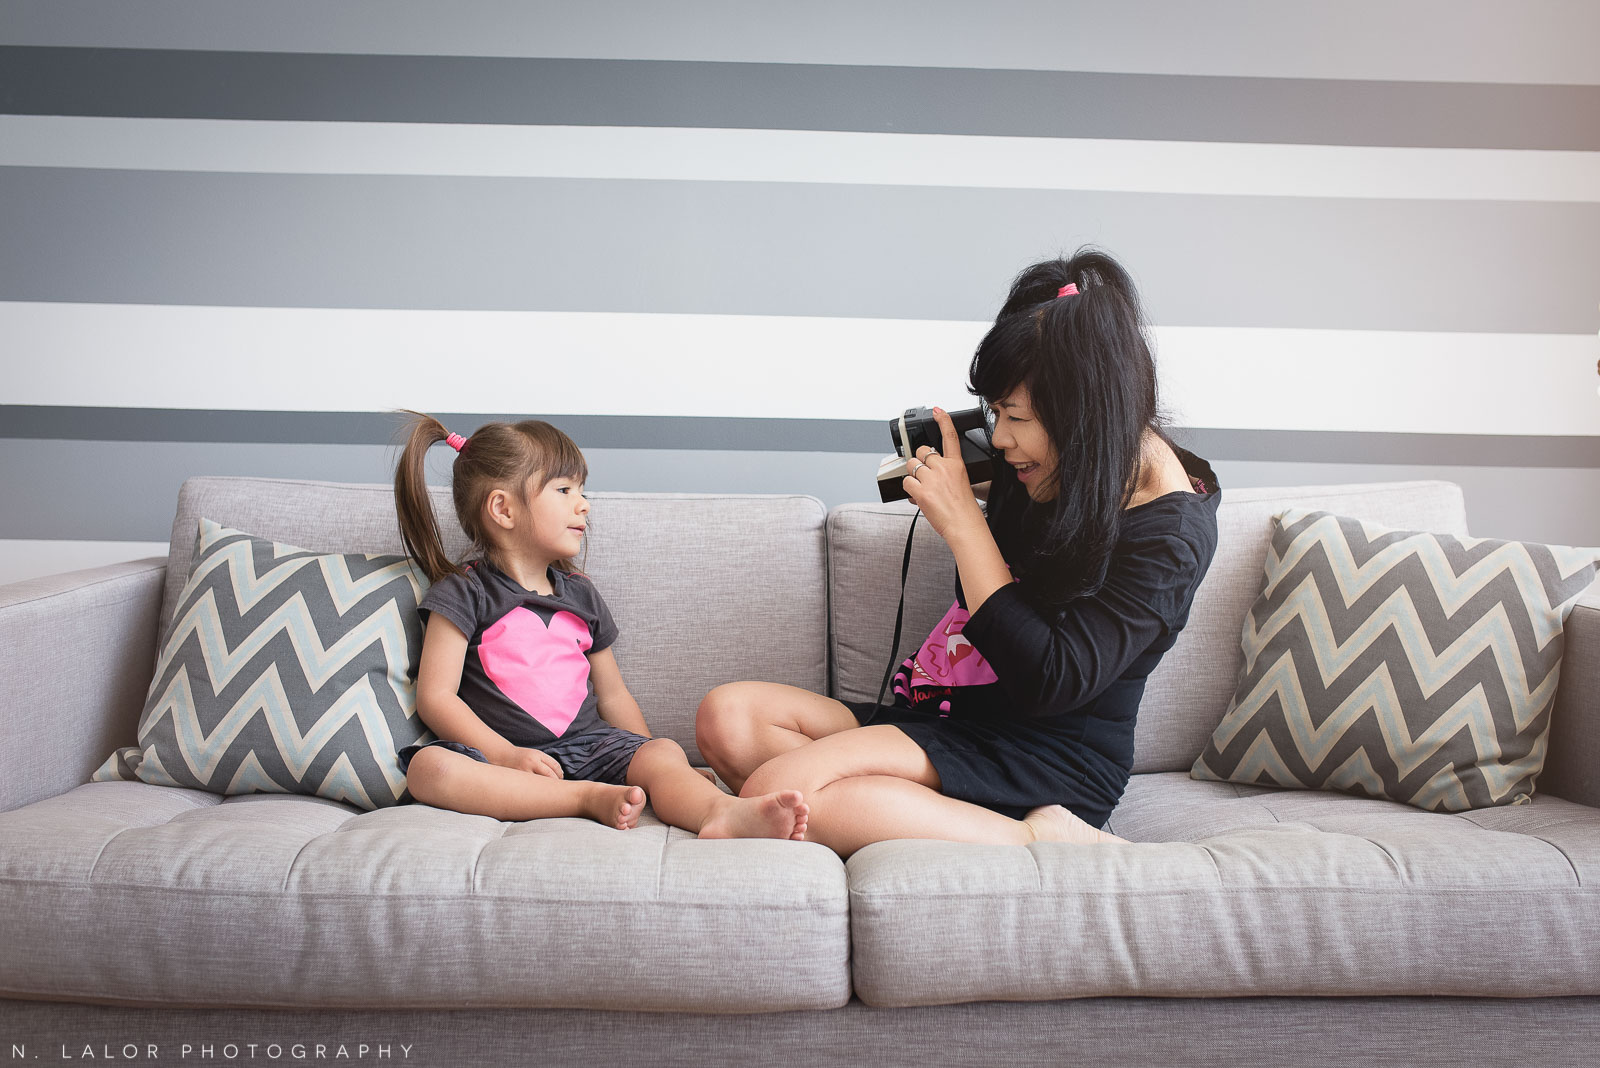 Styled family-life photo session in Brooklyn NY by N. Lalor Photography